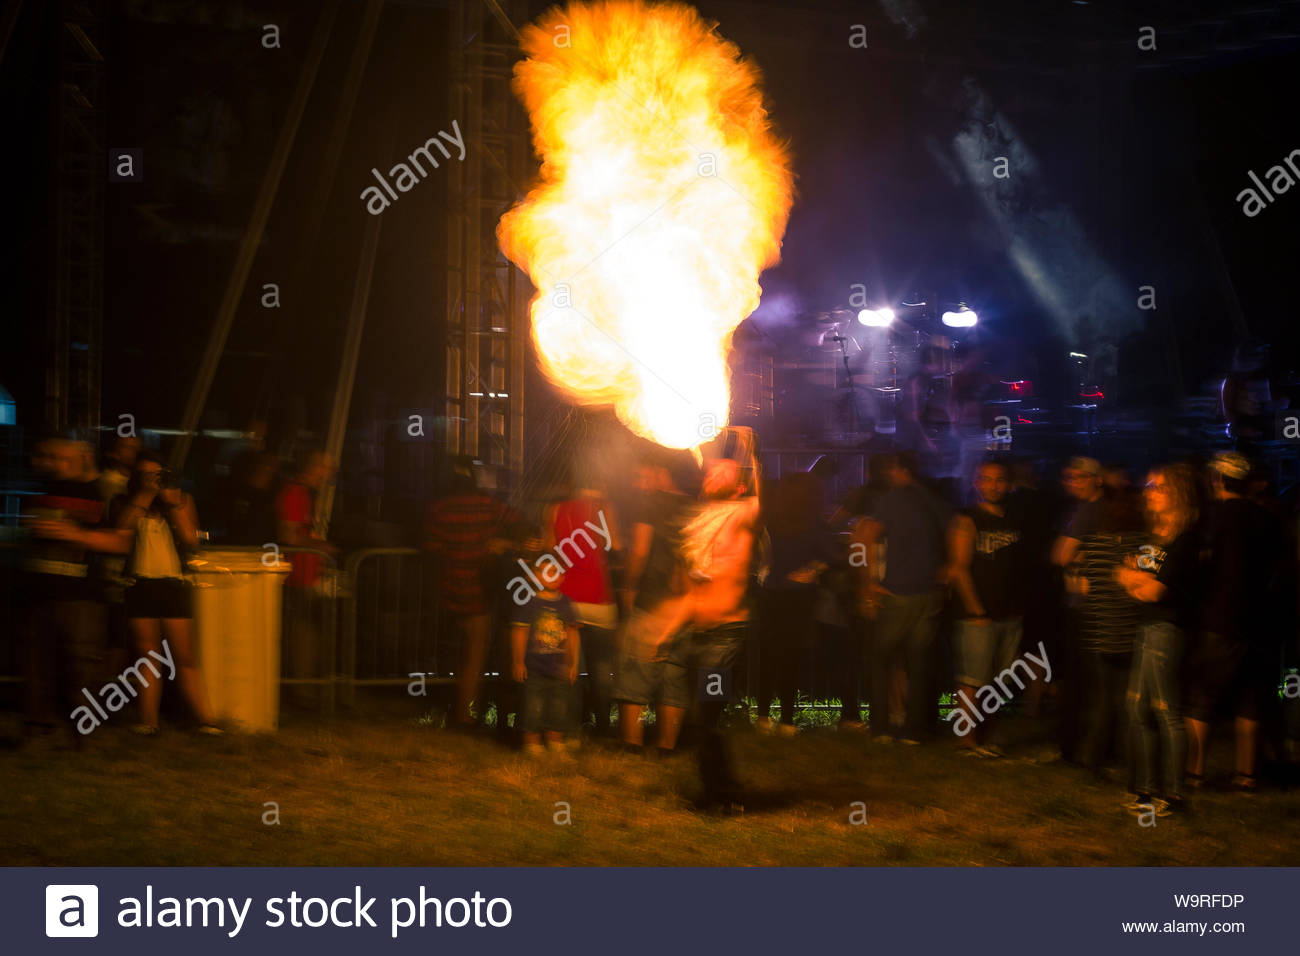 Motion blurred night shot showing a fire eater jugglers torches 1300x956